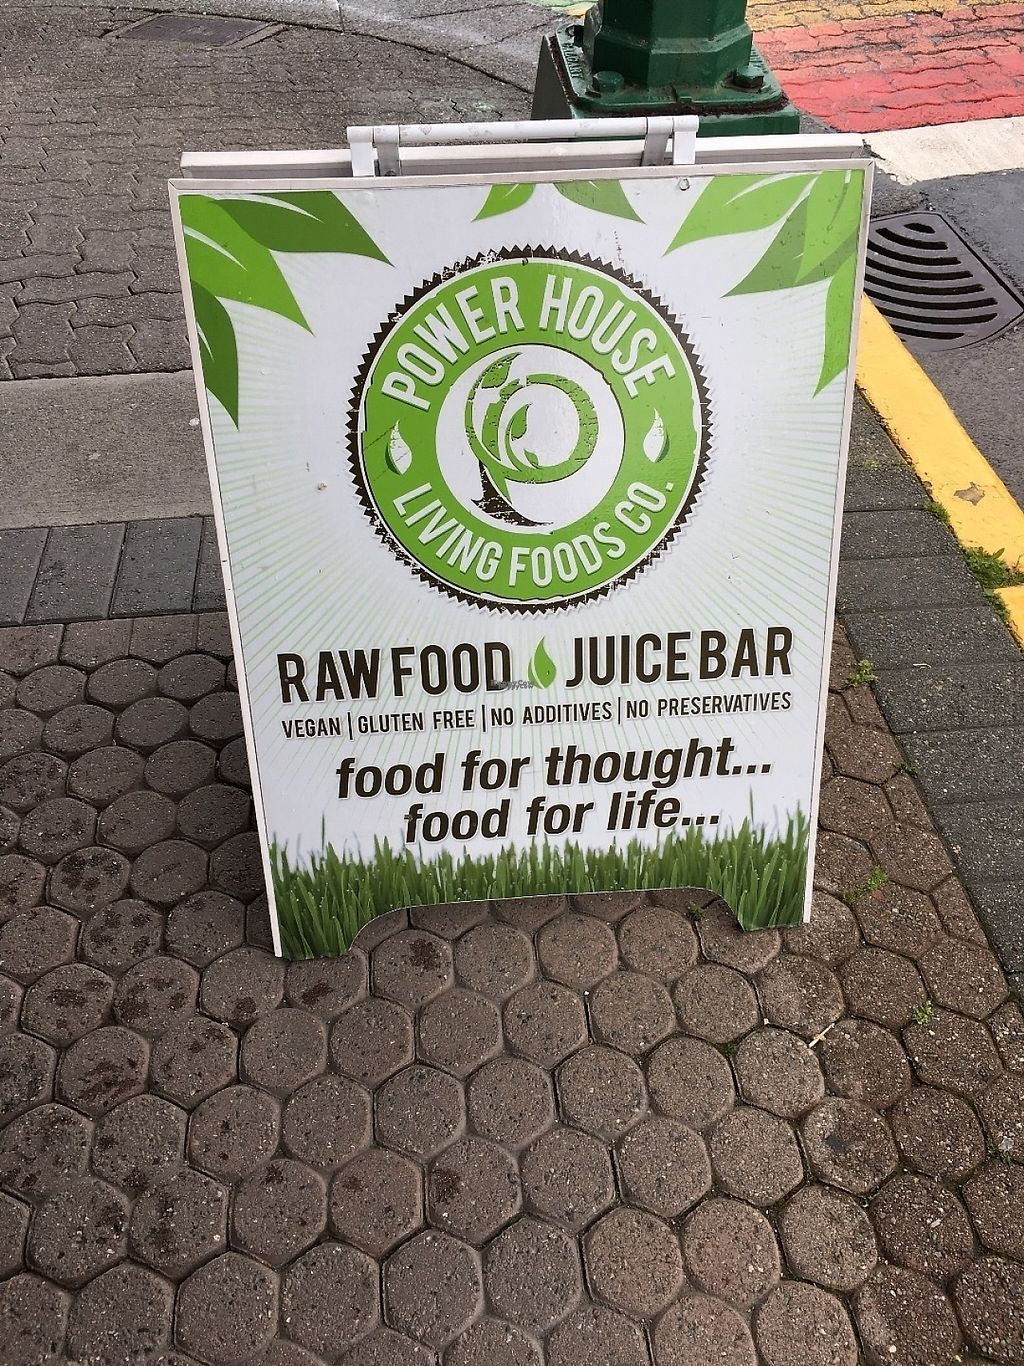 """Photo of Power House Living Foods  by <a href=""""/members/profile/vegan%20frog"""">vegan frog</a> <br/>Street sign <br/> April 23, 2017  - <a href='/contact/abuse/image/32271/251354'>Report</a>"""